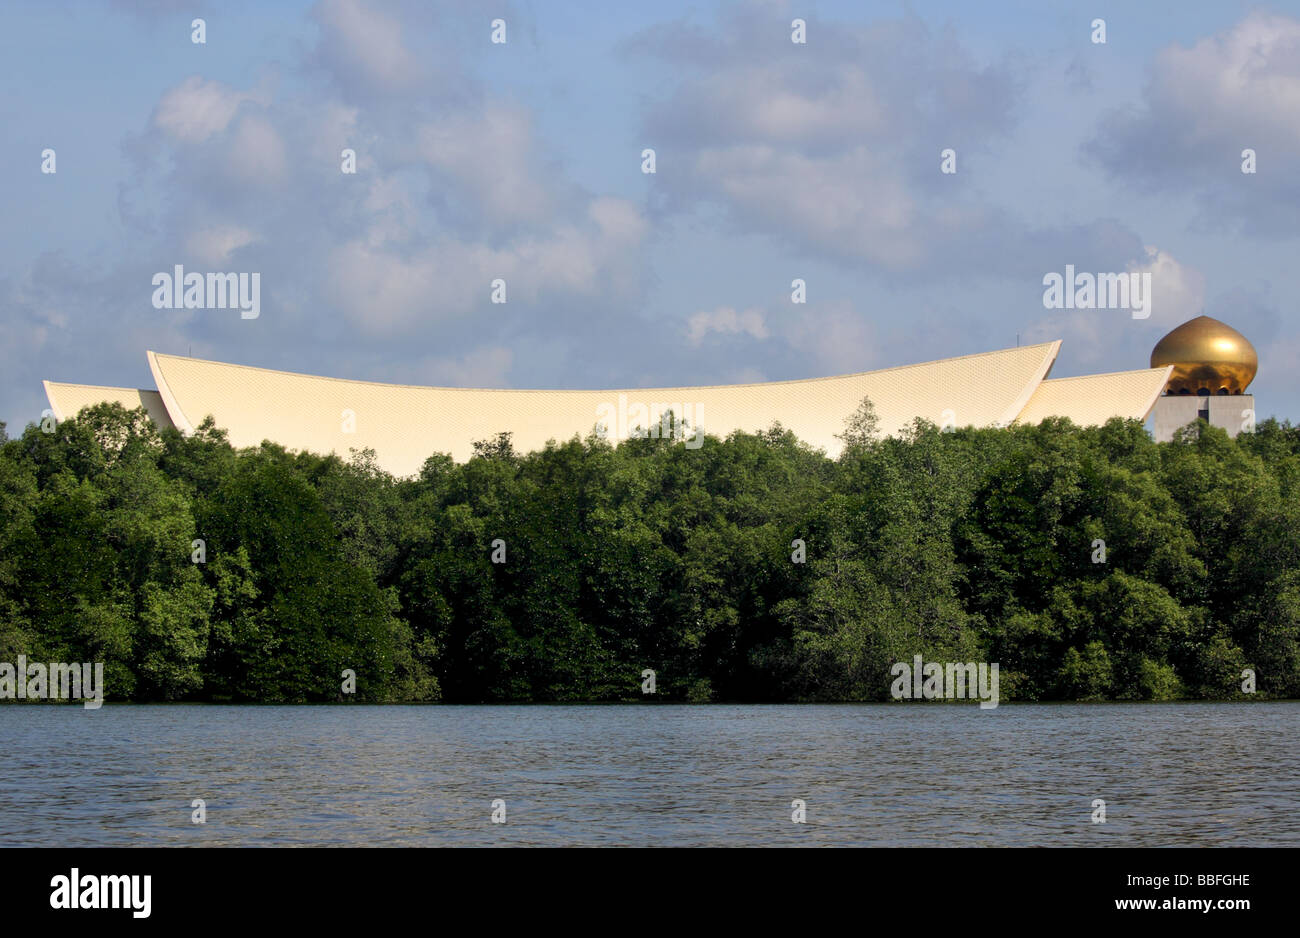 Sultan of Brunei's Palace from the river to the Mangroves Bandar Seri Begawan - Stock Image